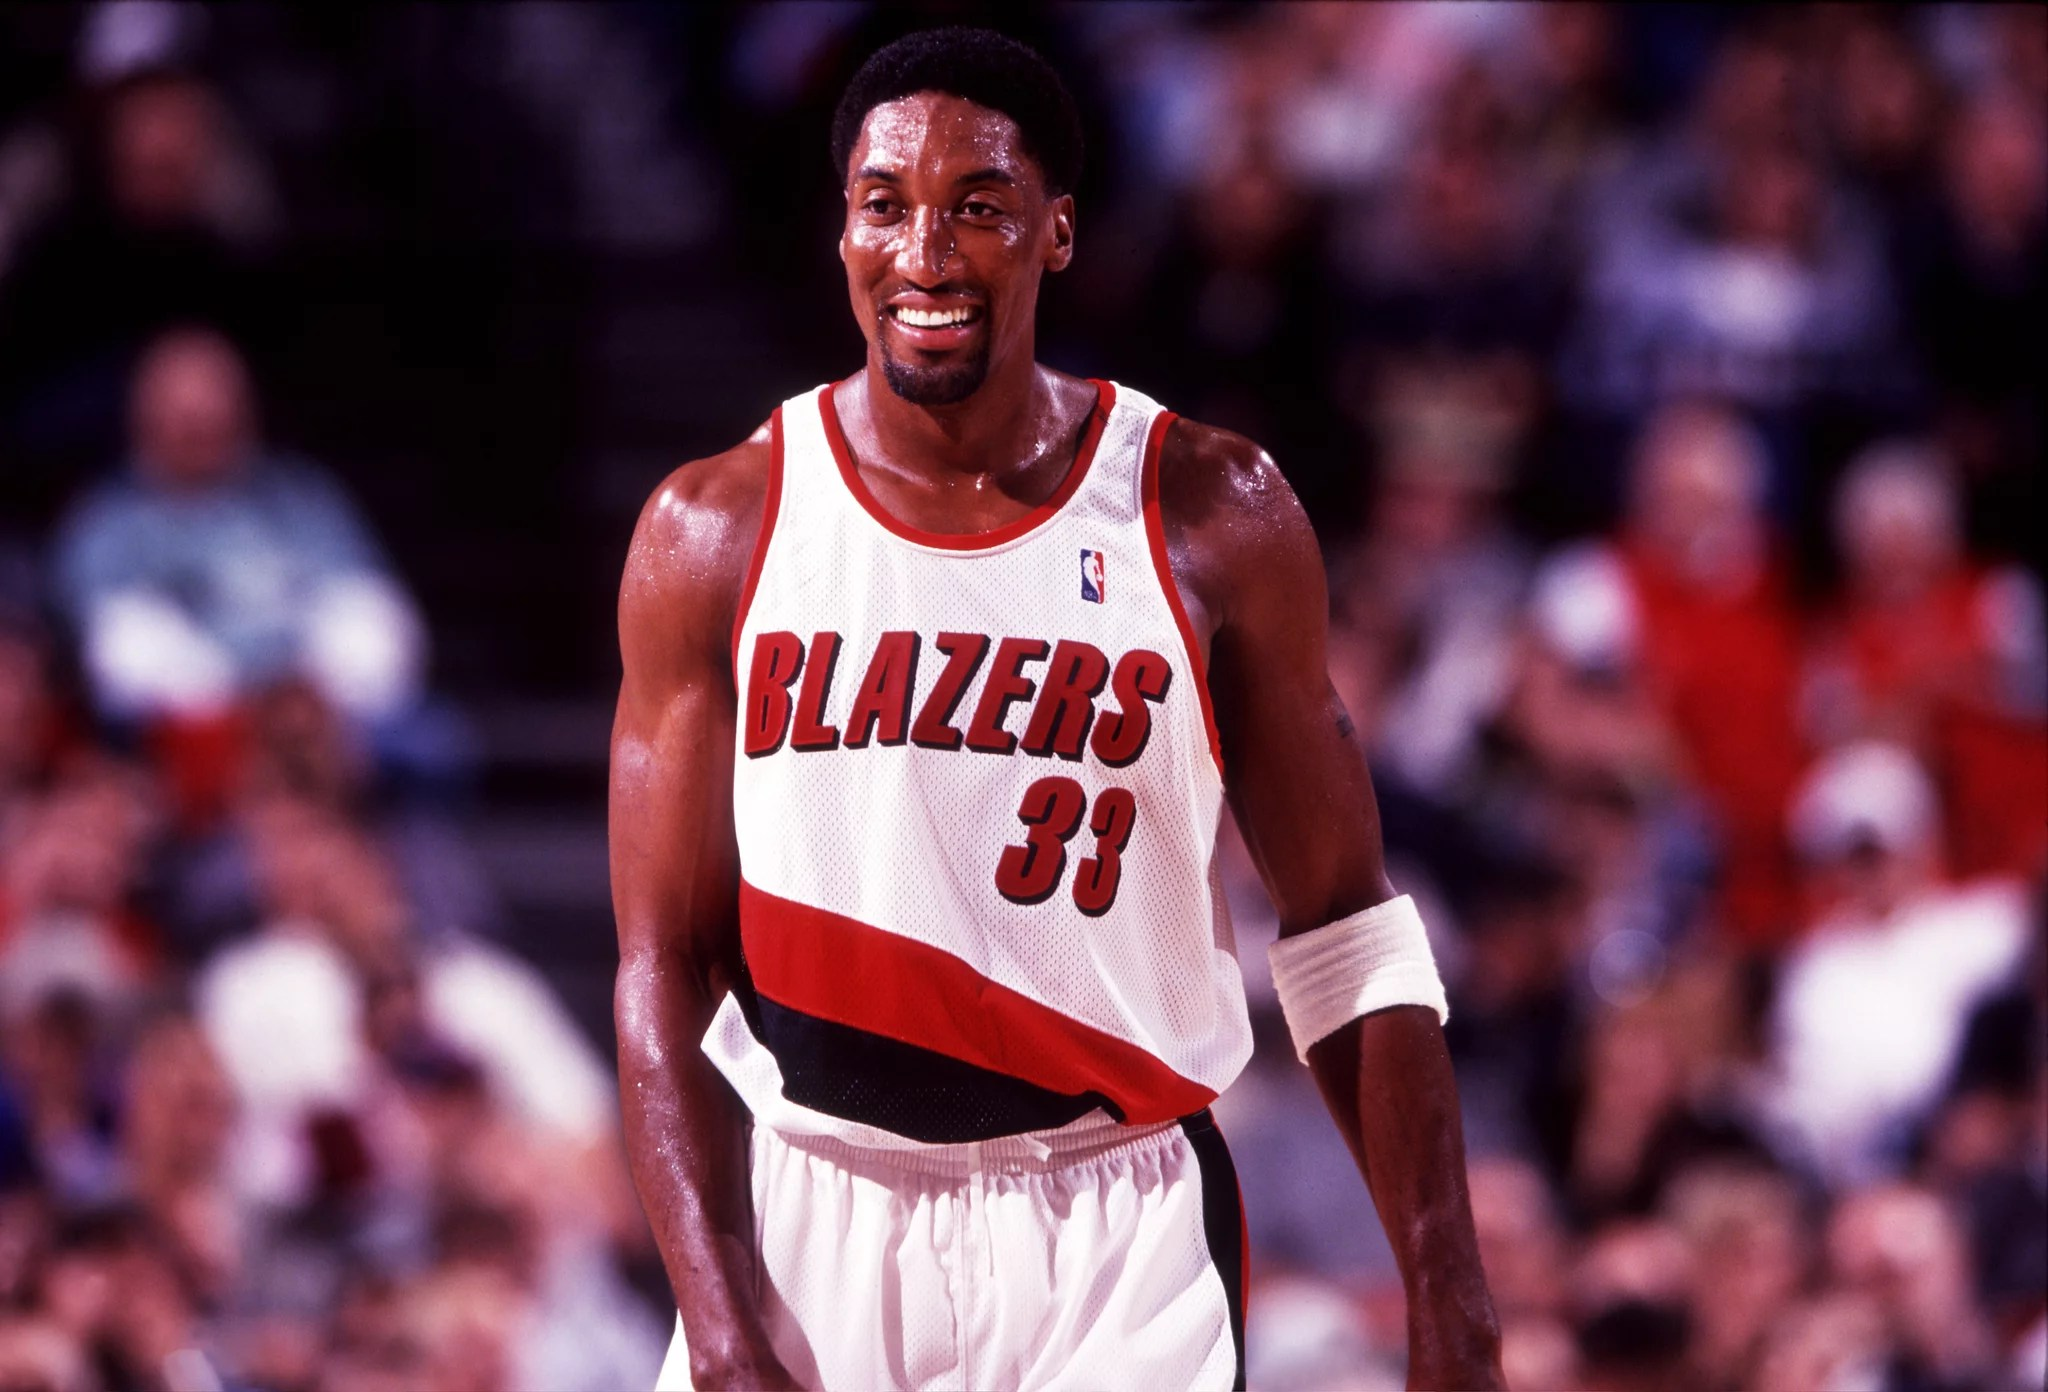 1999:  Forward Scottie Pippen of the Portland Trailblazers during a Blazers game at the Rose Garden in Portland, OR. (Photo by Icon Sportswire)